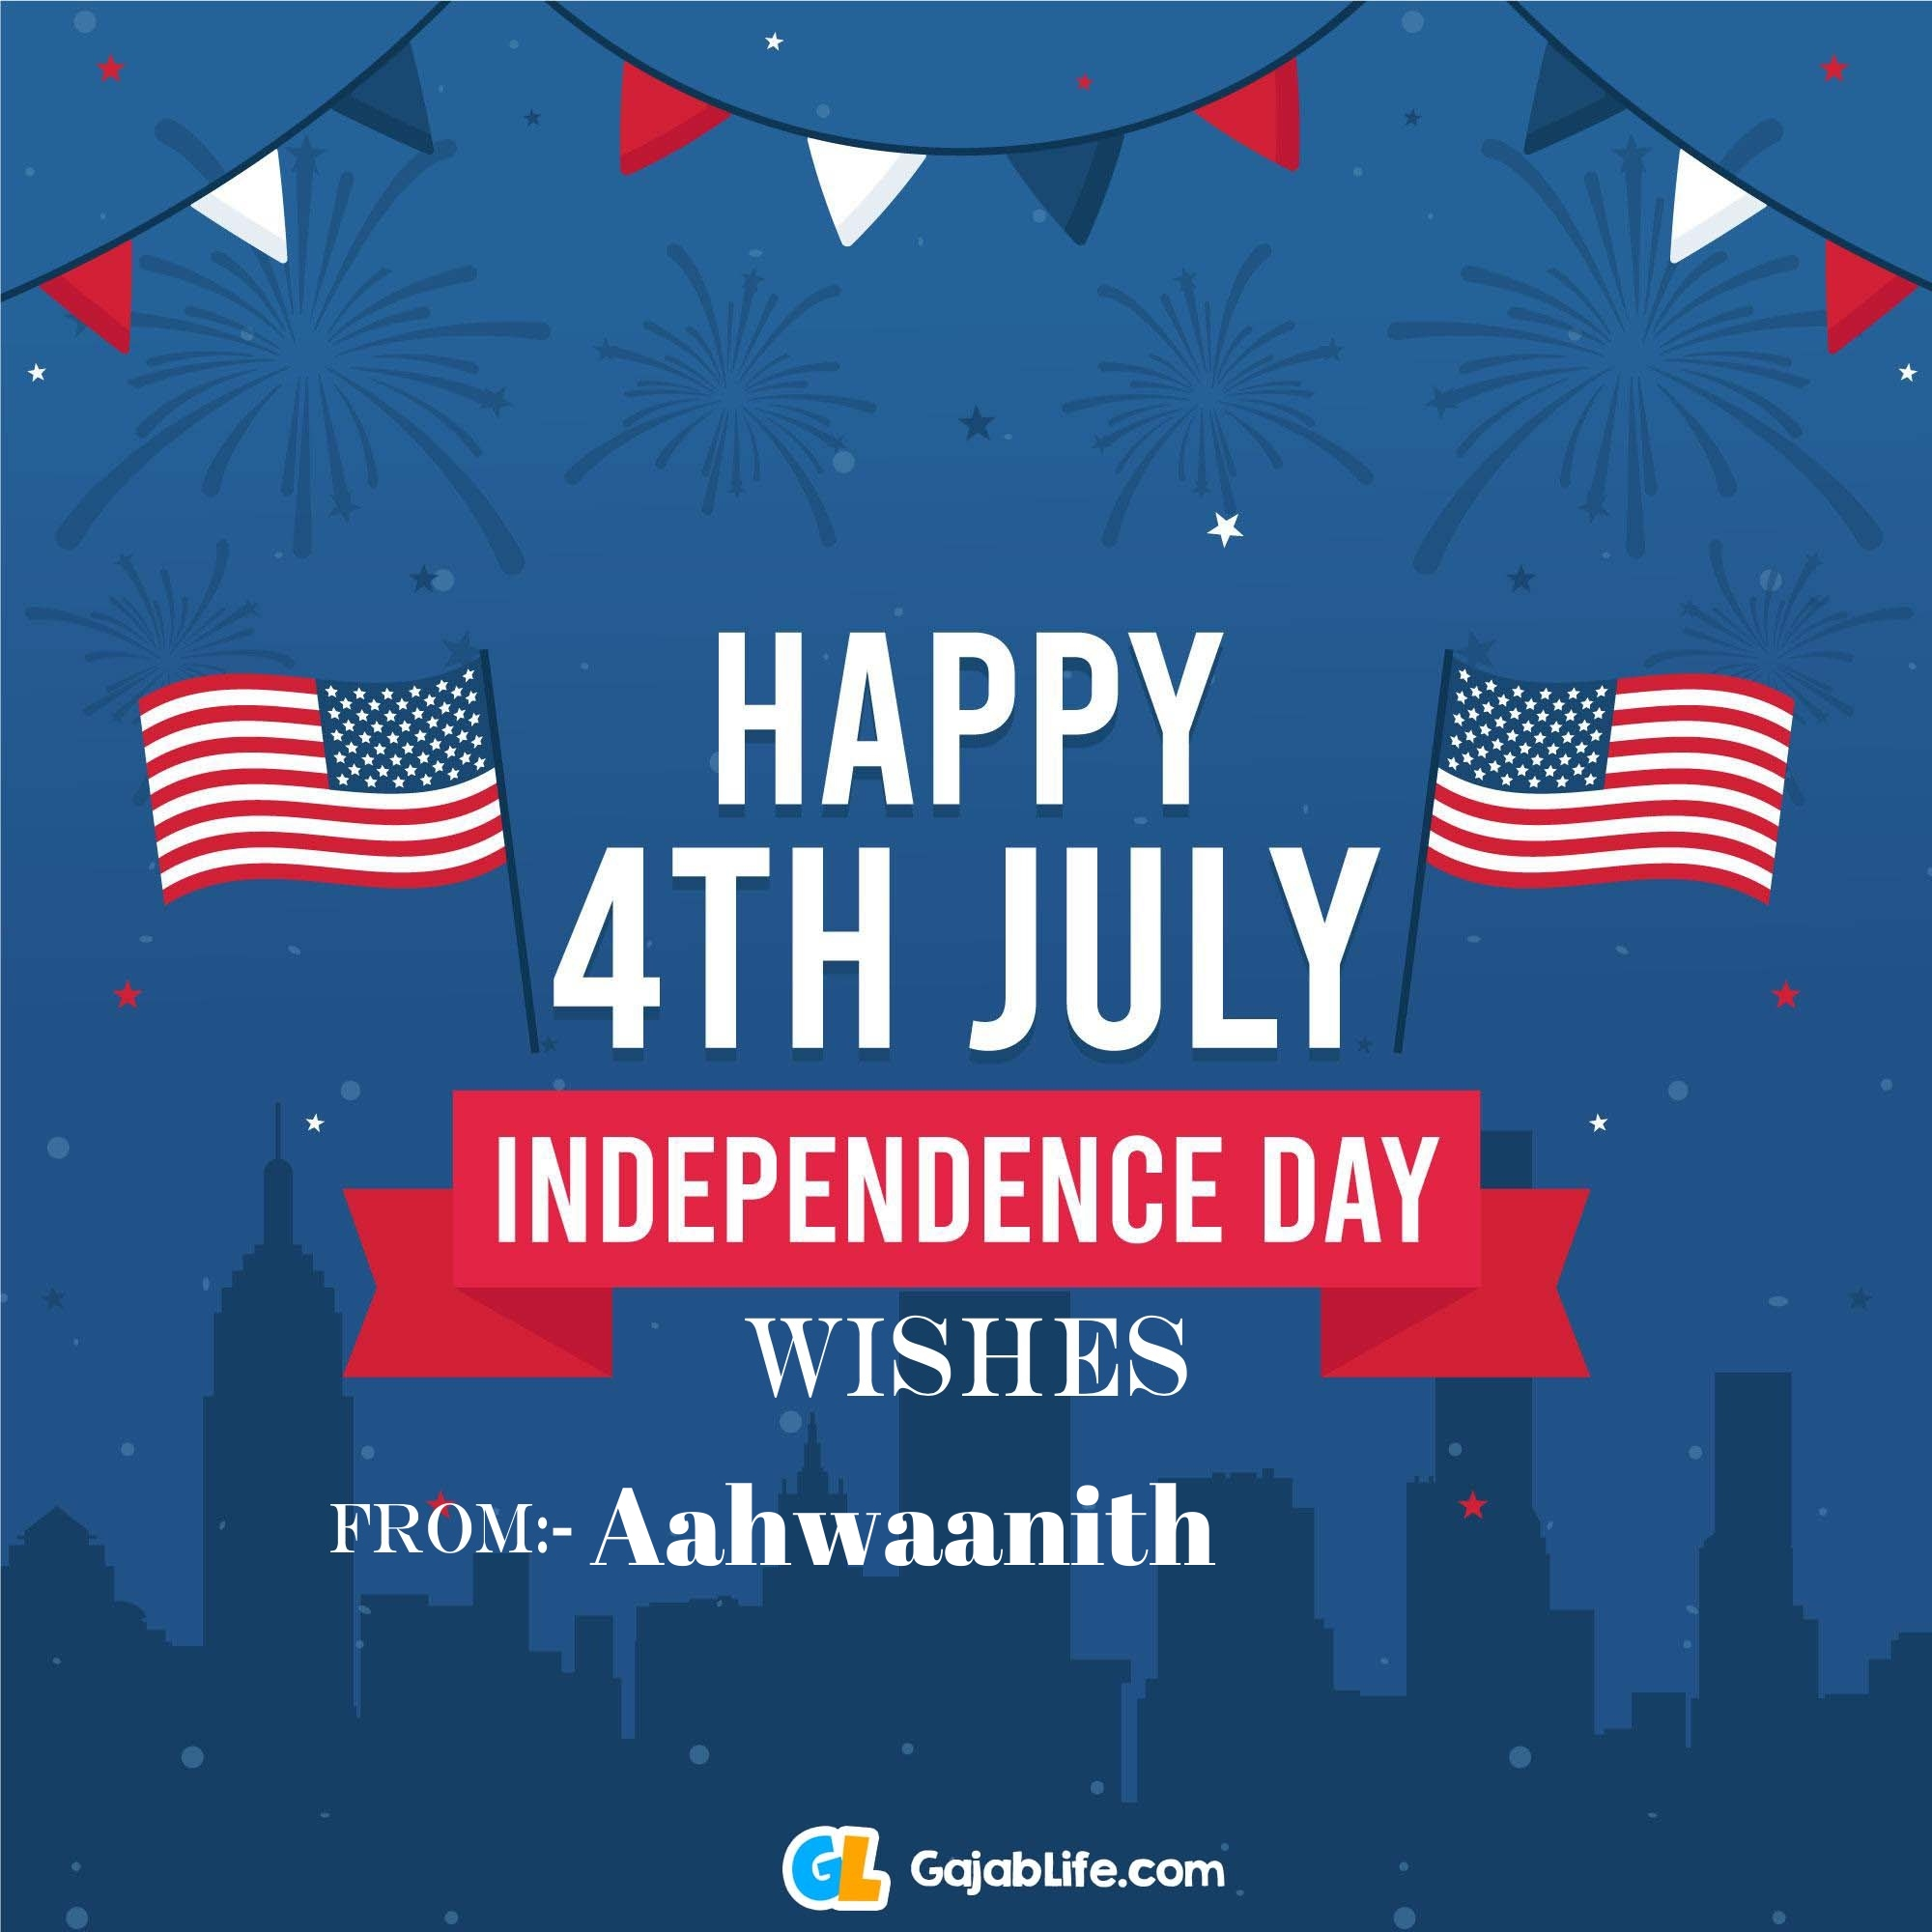 Aahwaanith happy independence day united states of america images